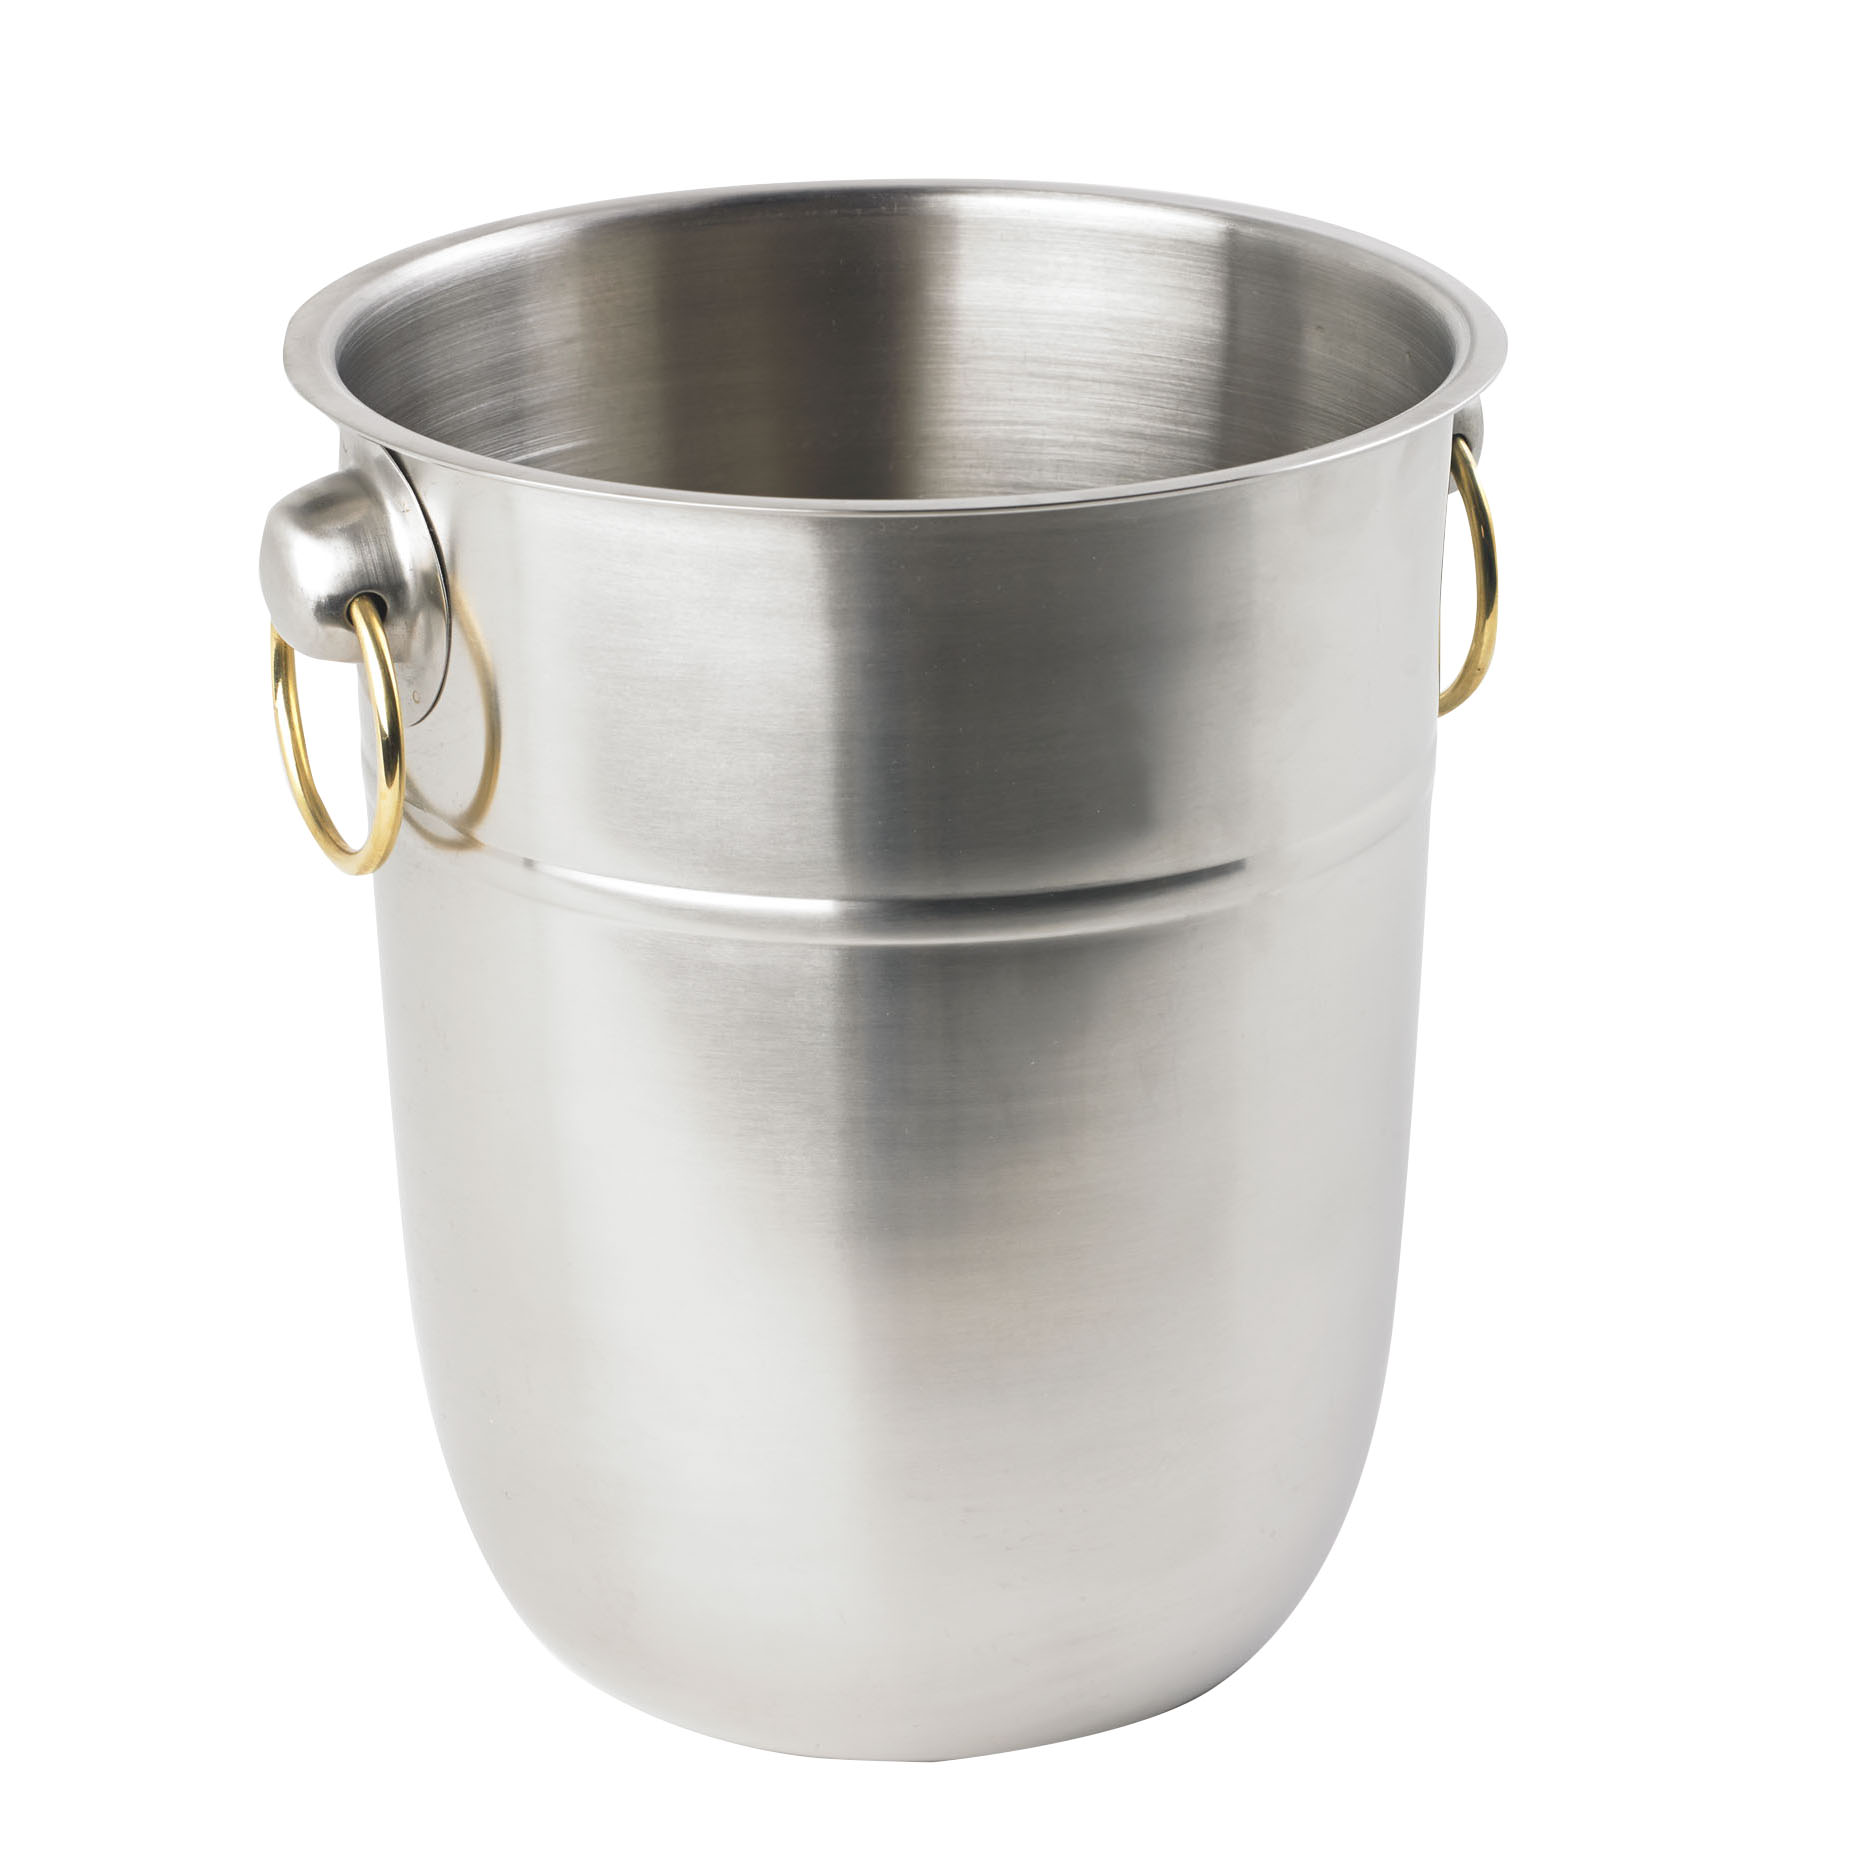 Vollrath 46801 wine bucket / cooler